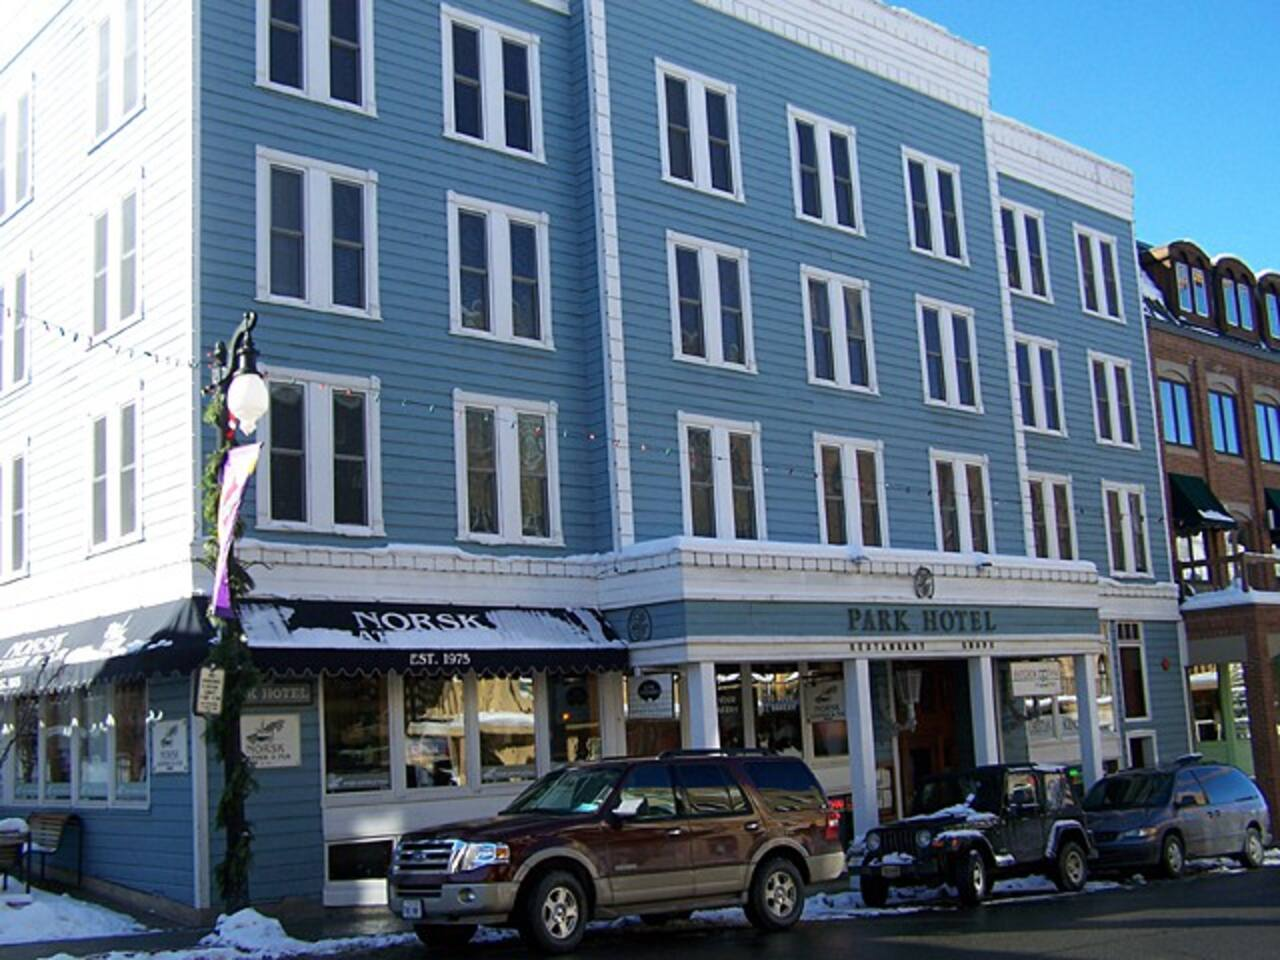 Building directly on Main Street, Park City